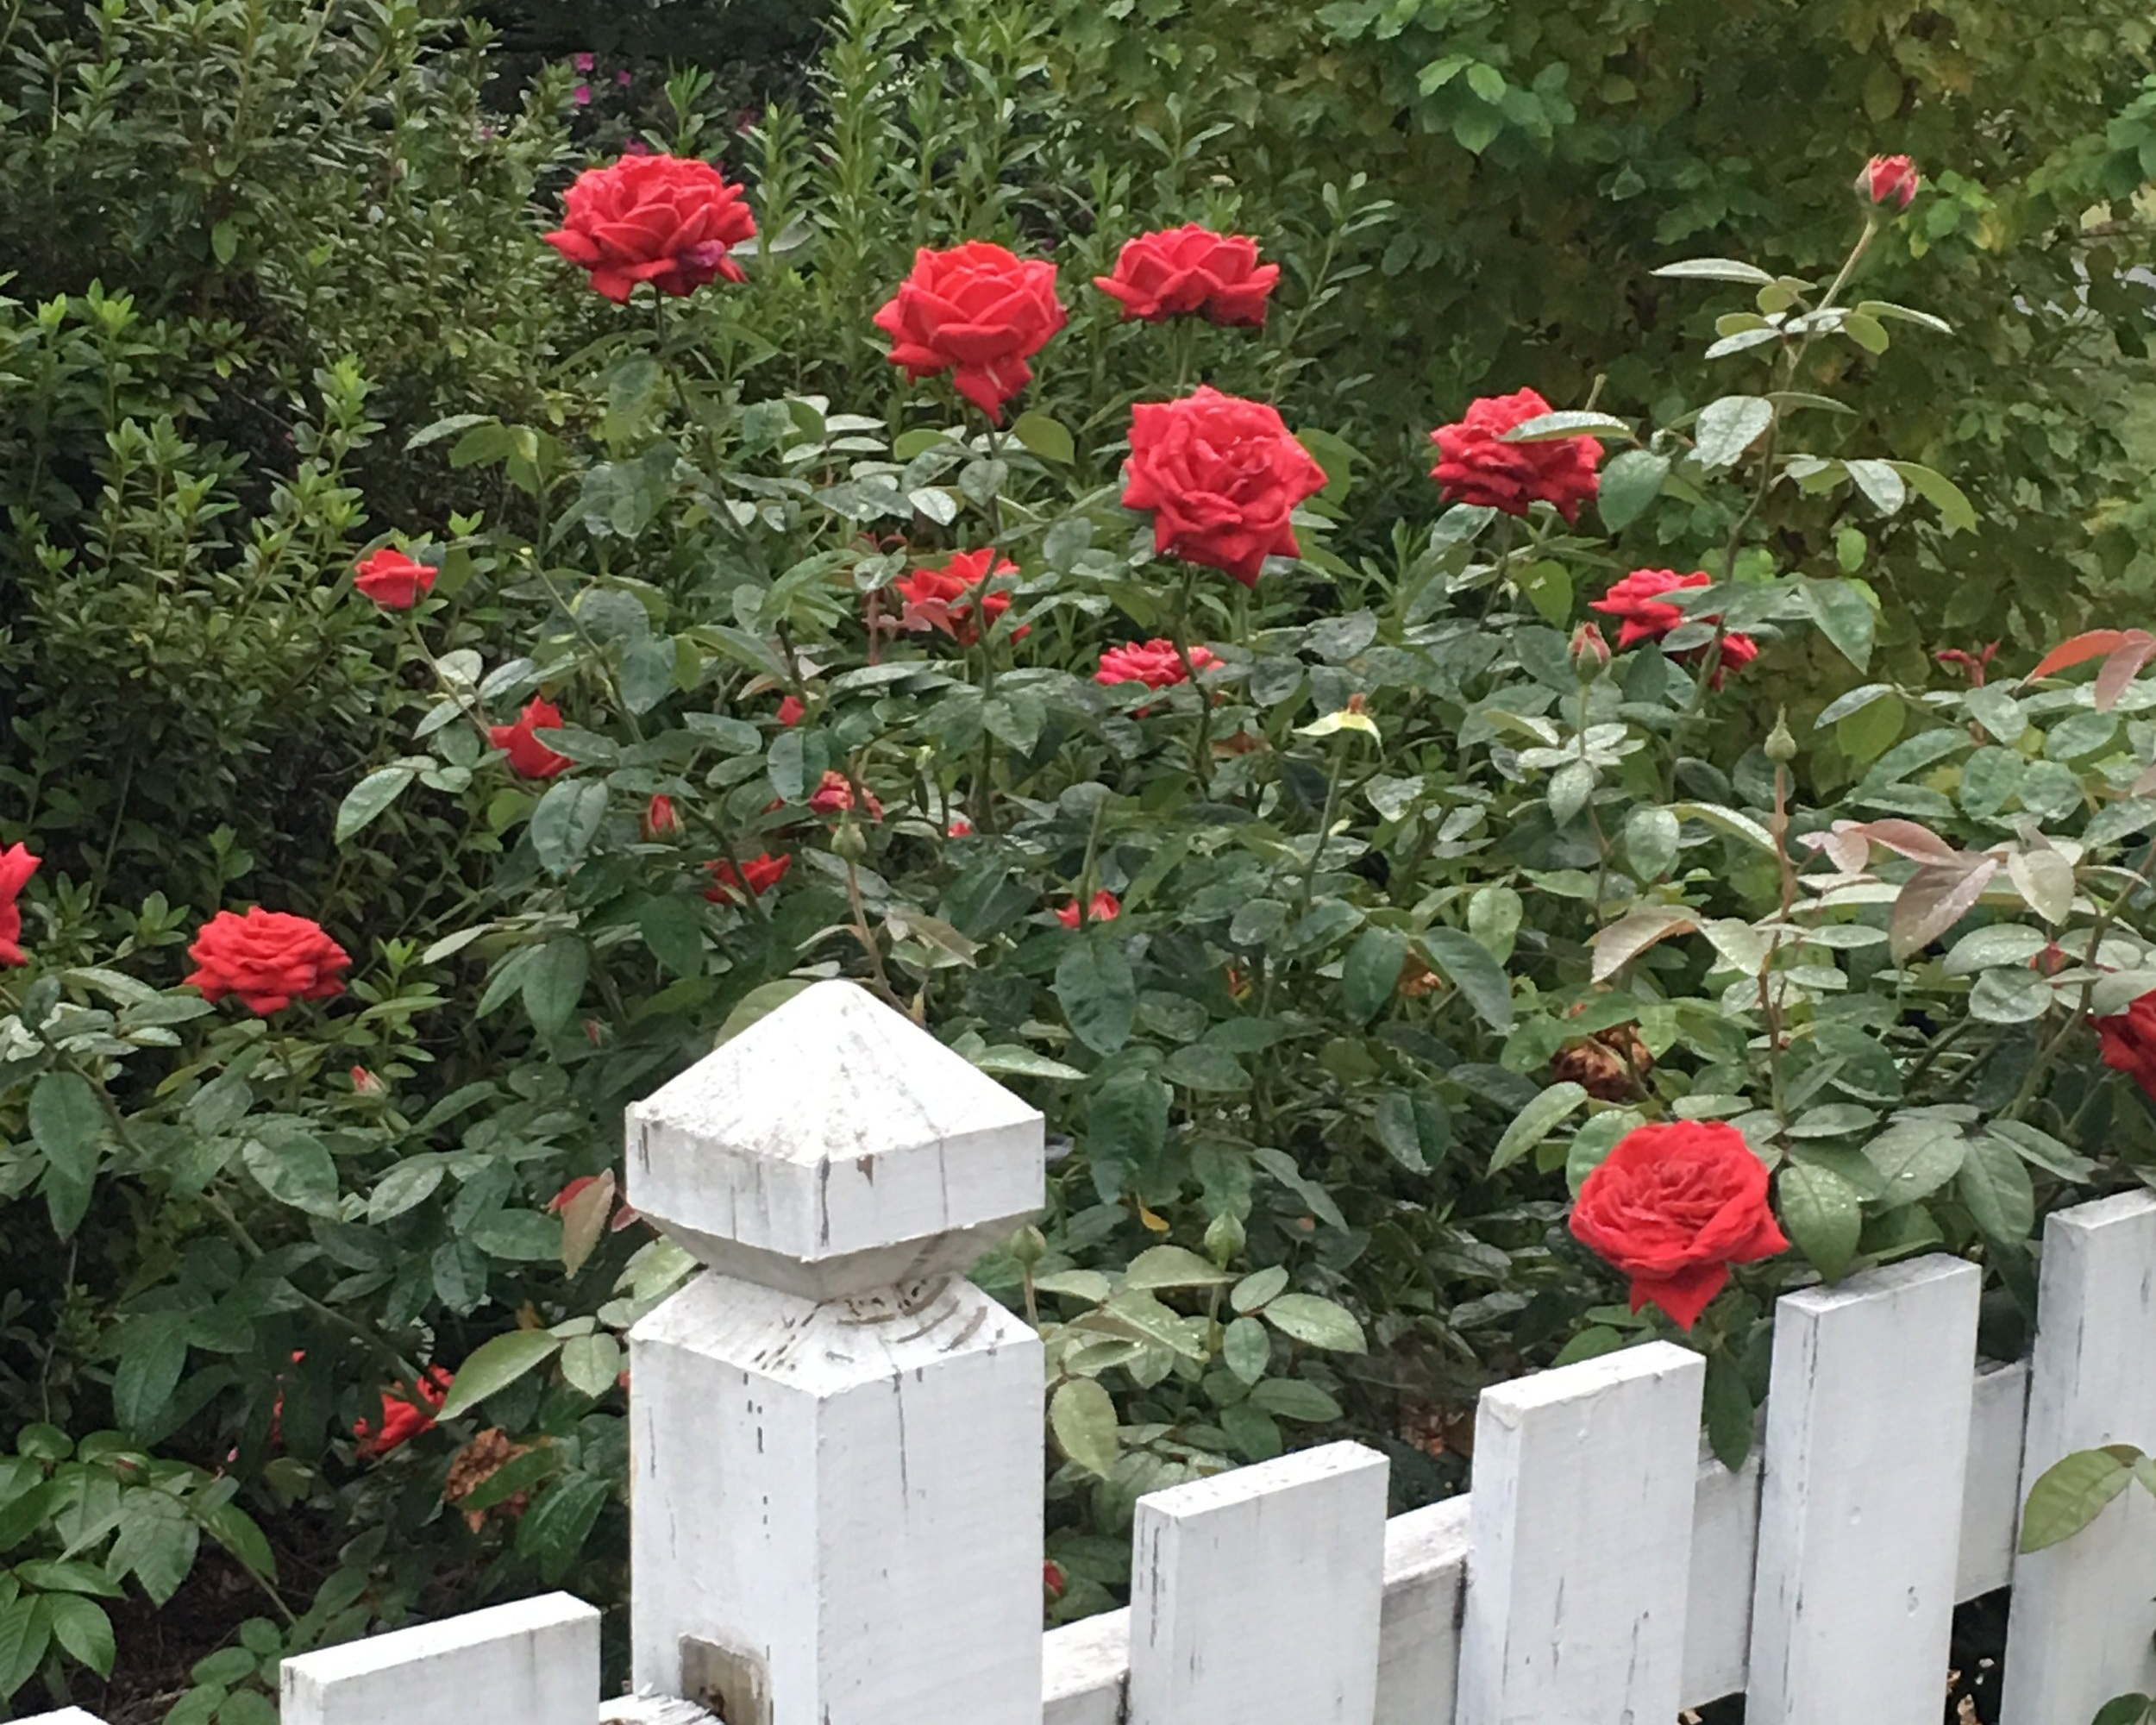 Shrub roses that bloom all season give great color. Use a once-a-month fertilizer to help keep shrubs blooming prolifically. Keep deadheading spent blooms and prune when necessary to keep shrub in check and remove diseased leaves or broken/dead shoots.